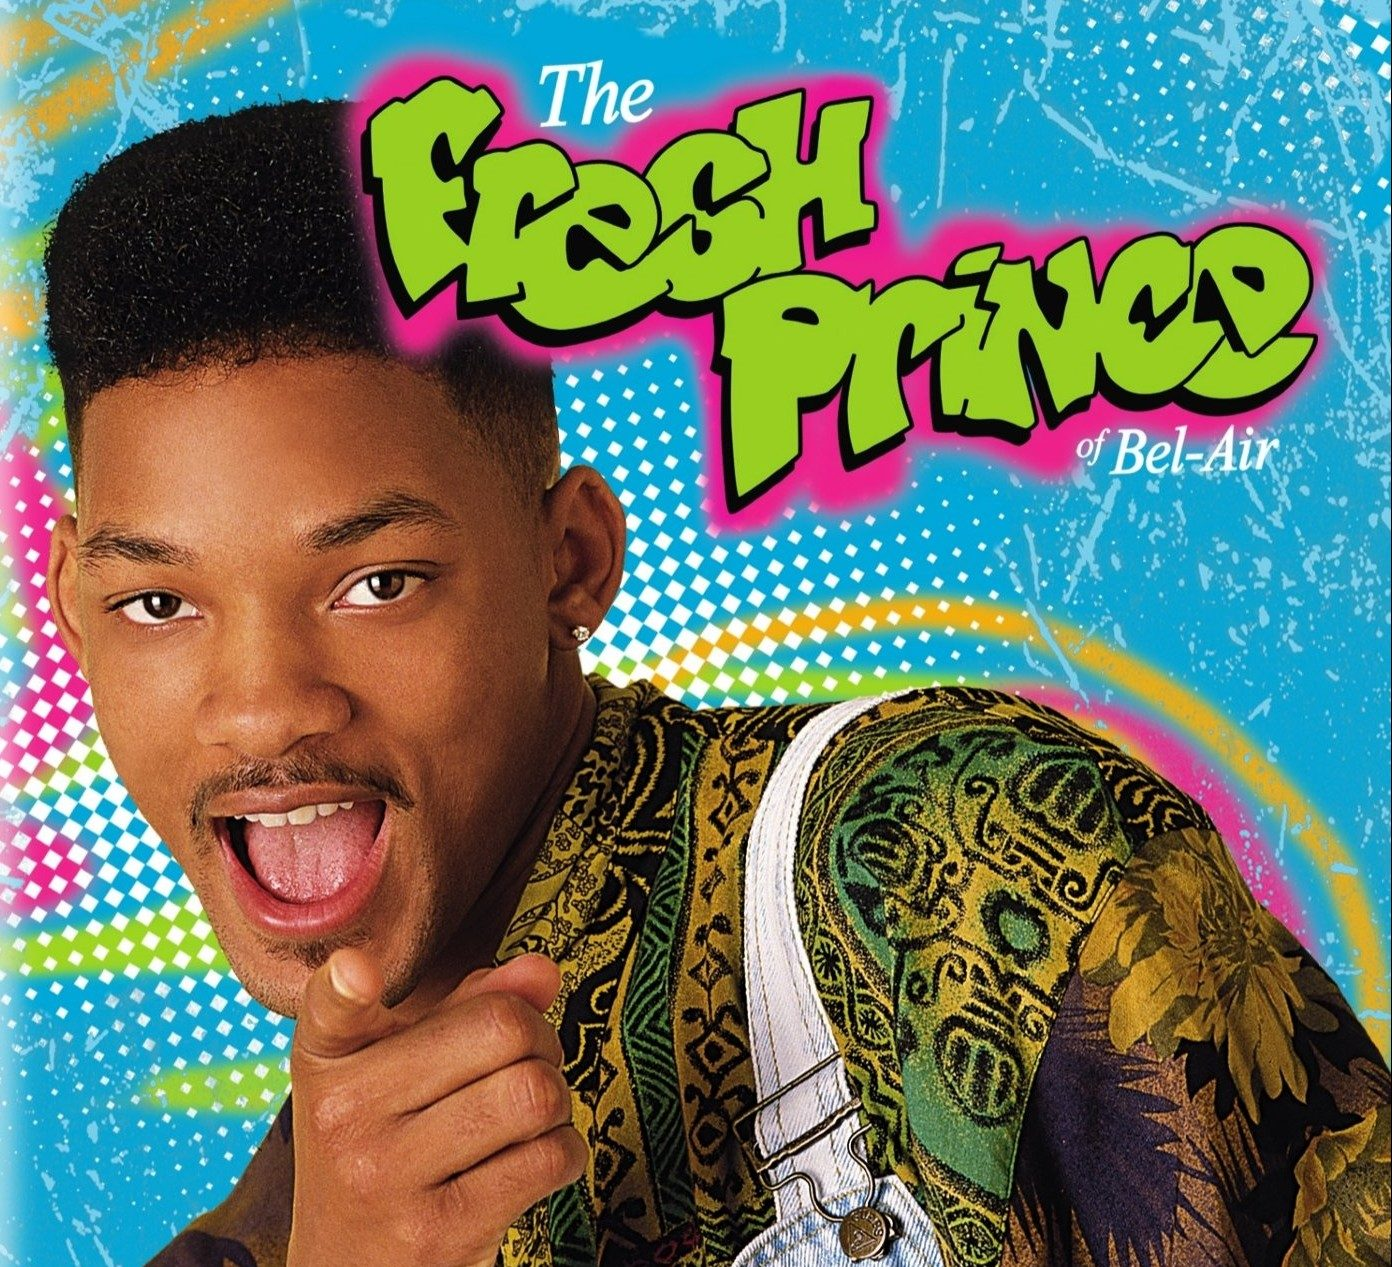 fresh prince e1603291450304 20 Things You May Not Have Realised About The Fresh Prince Of Bel-Air